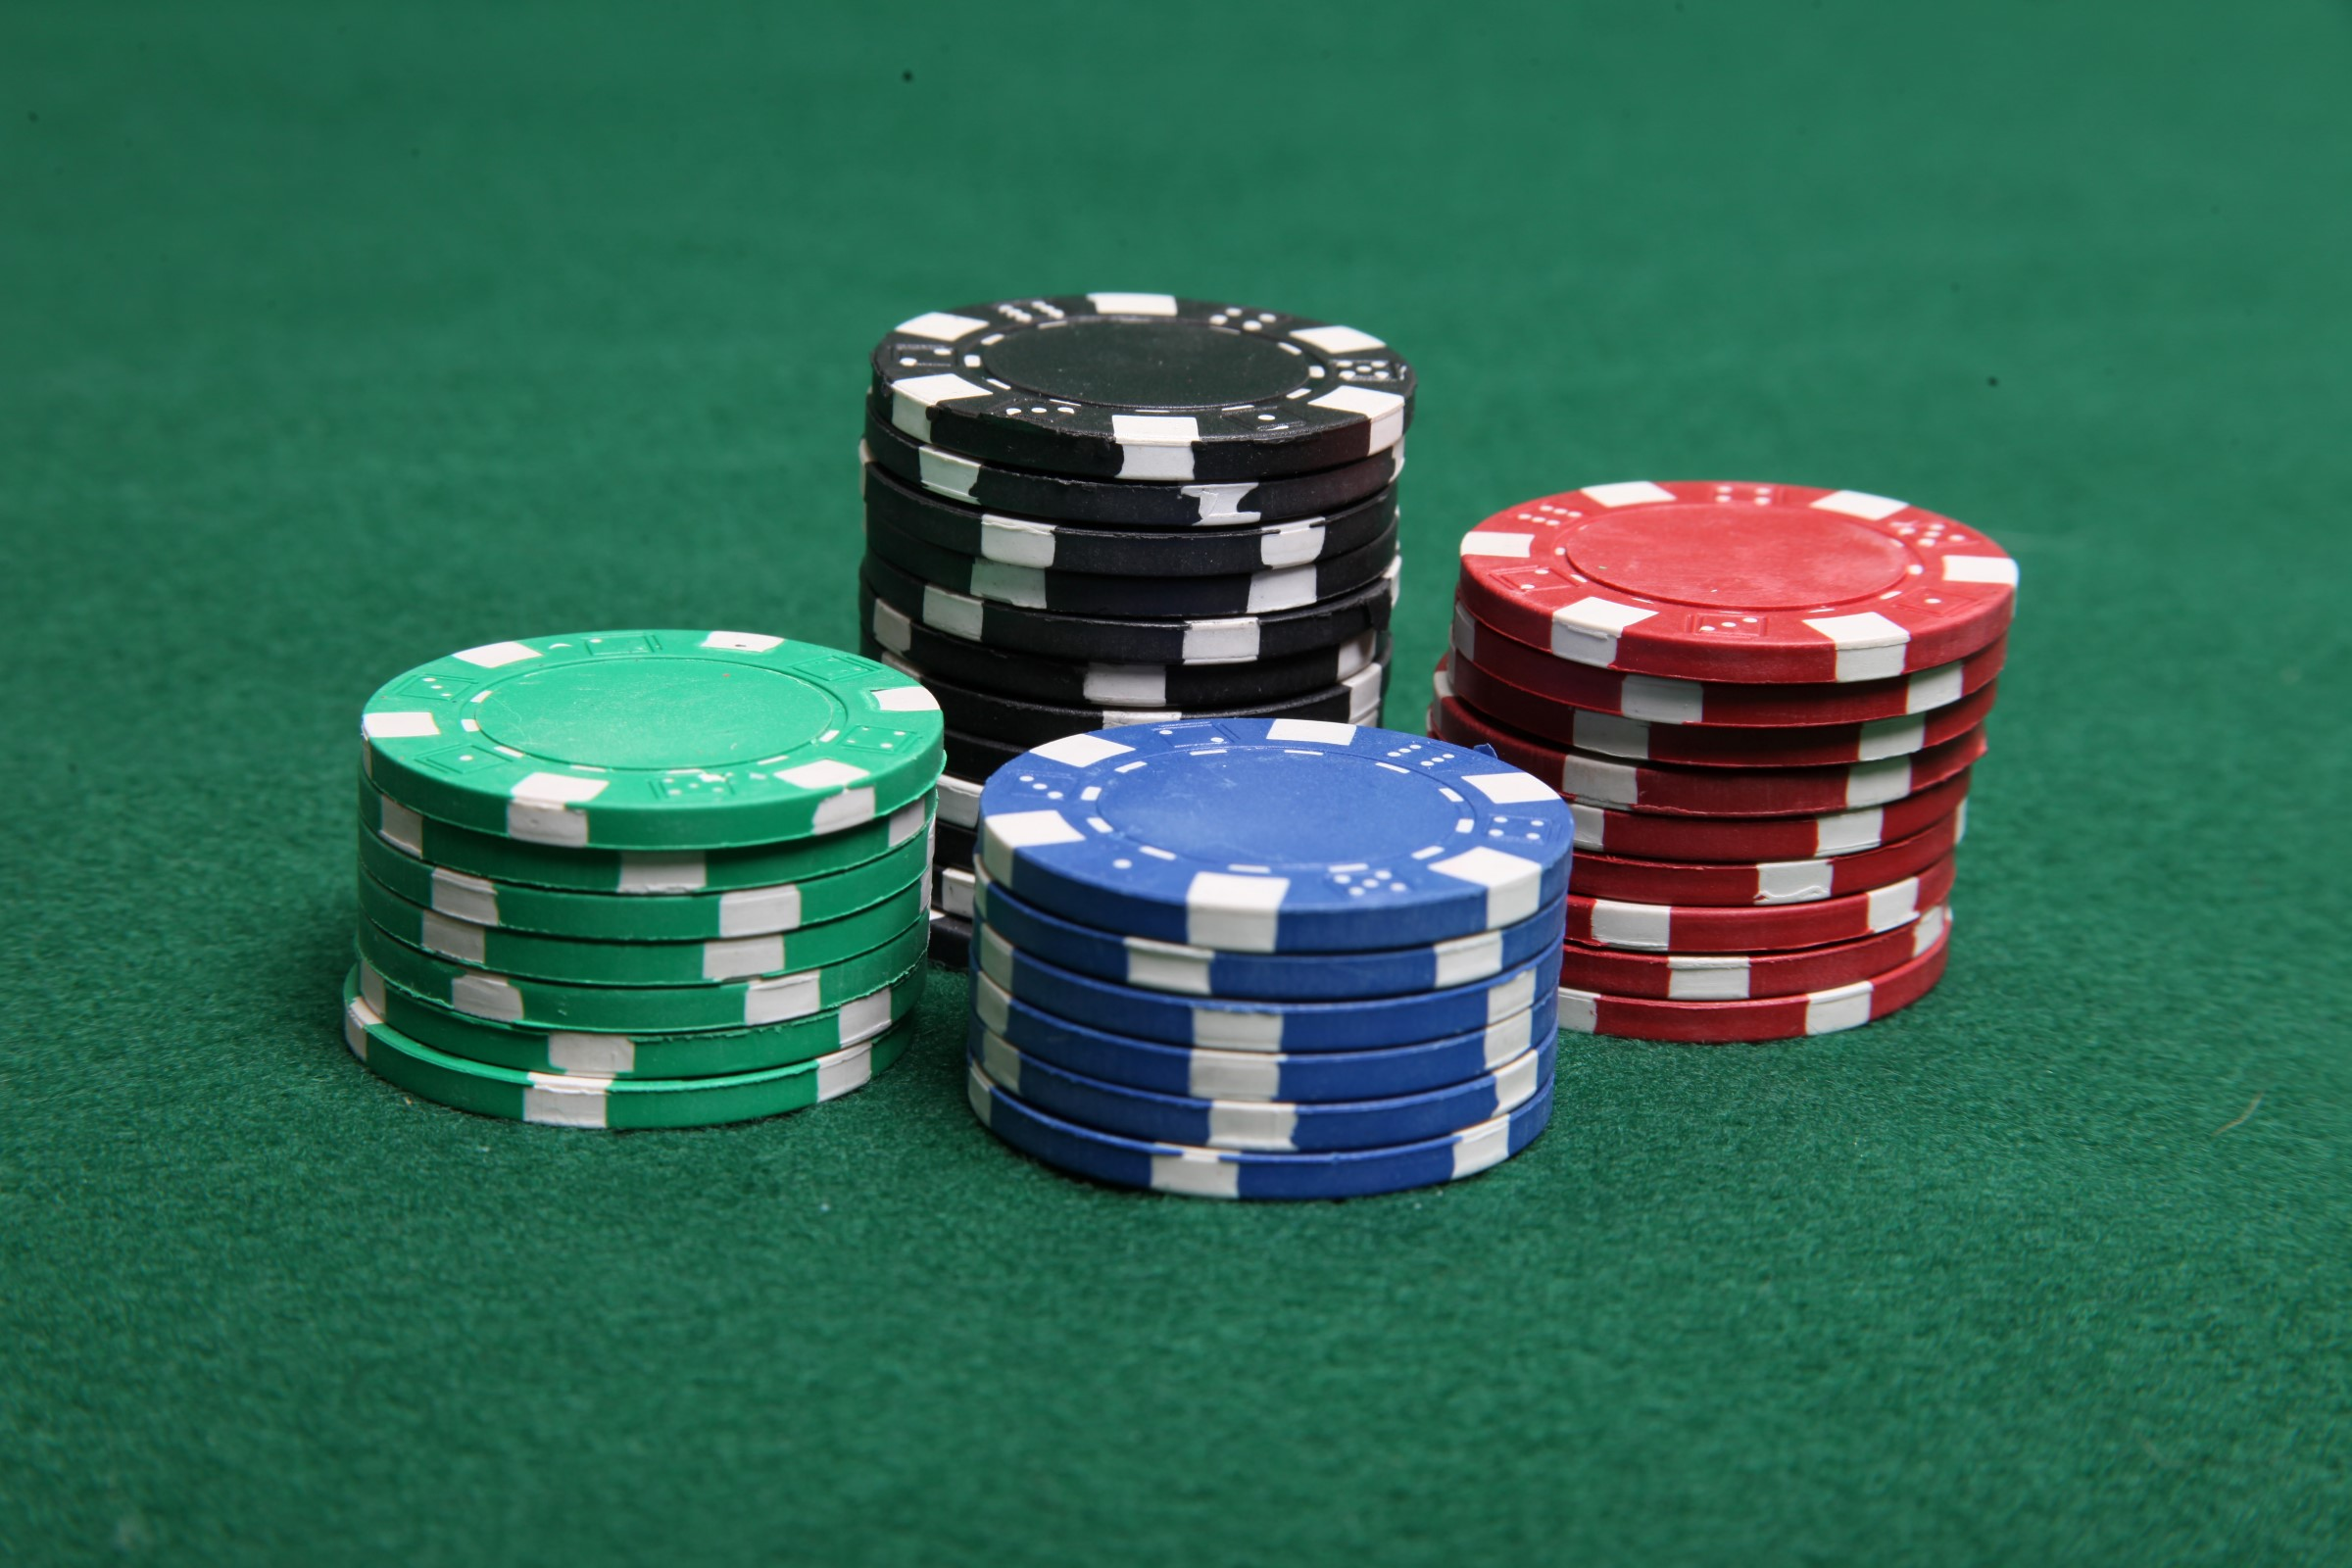 Stacks of poker chips, Addiction, Bet, Black, Blue, HQ Photo